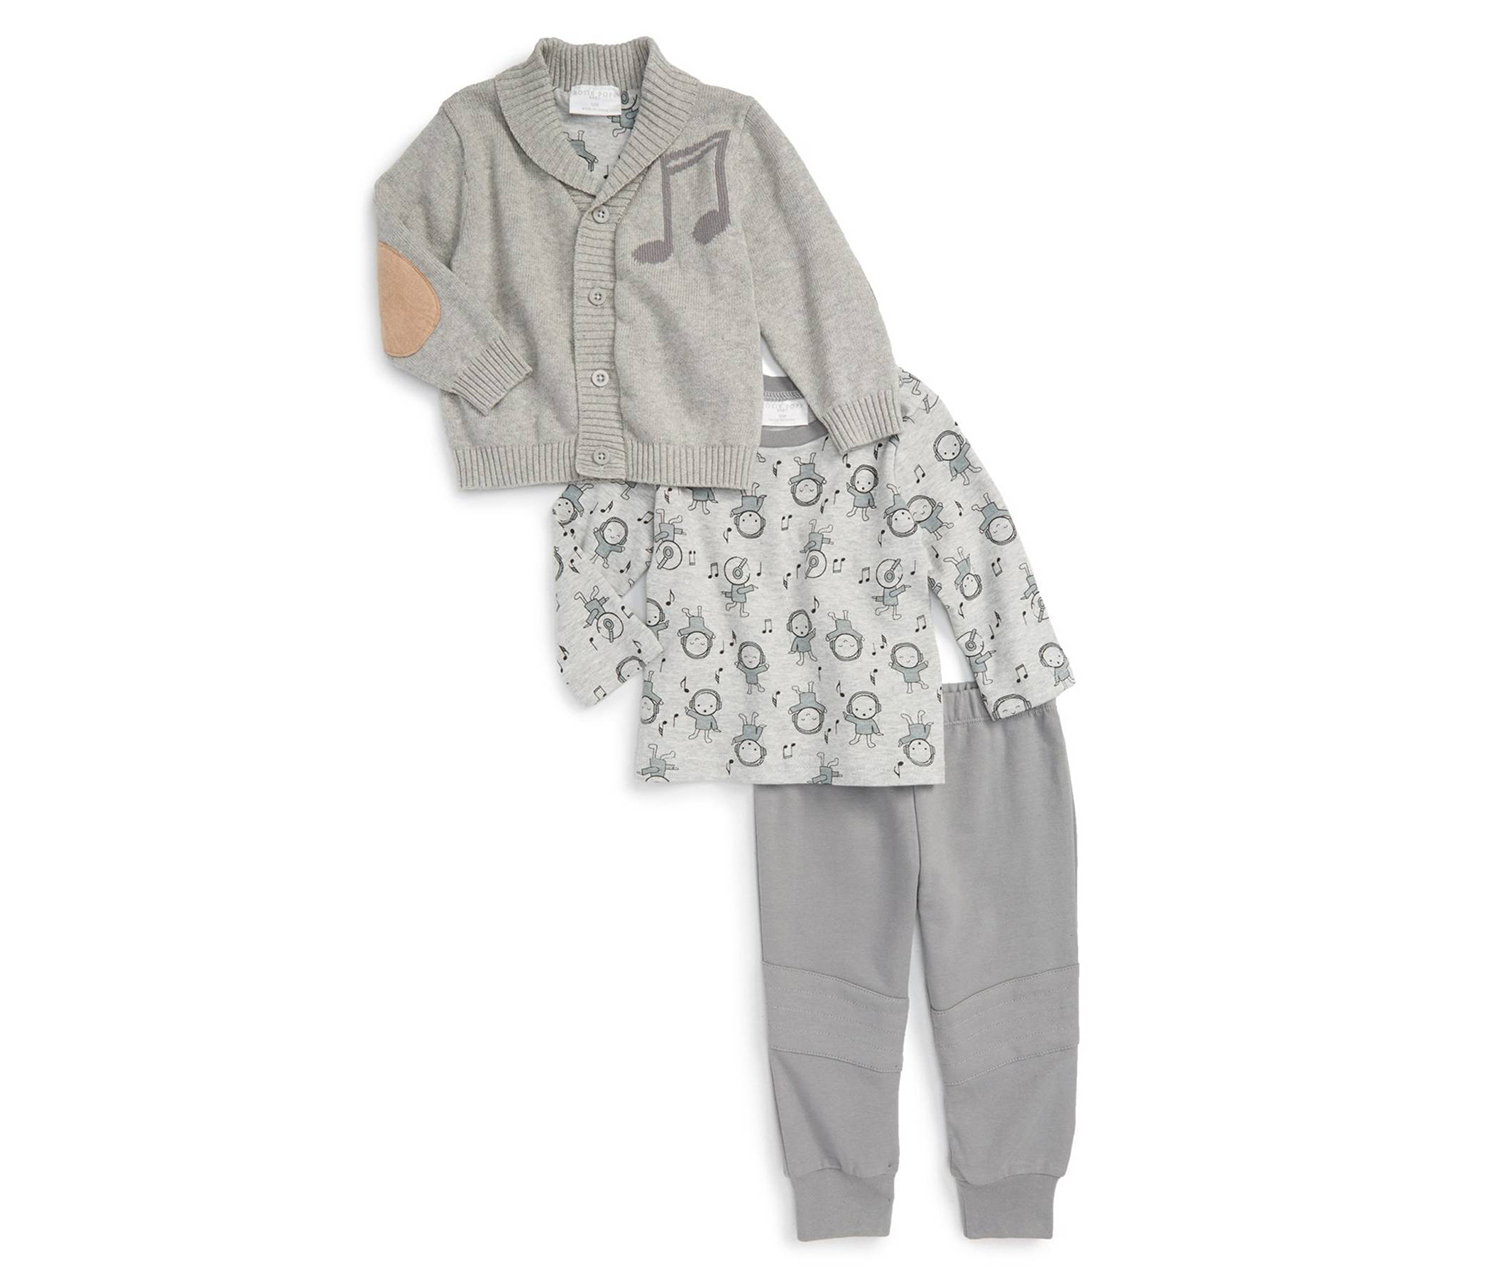 Toddler Boy's Music Cardigan T-Shirt & Pants Set, Gray